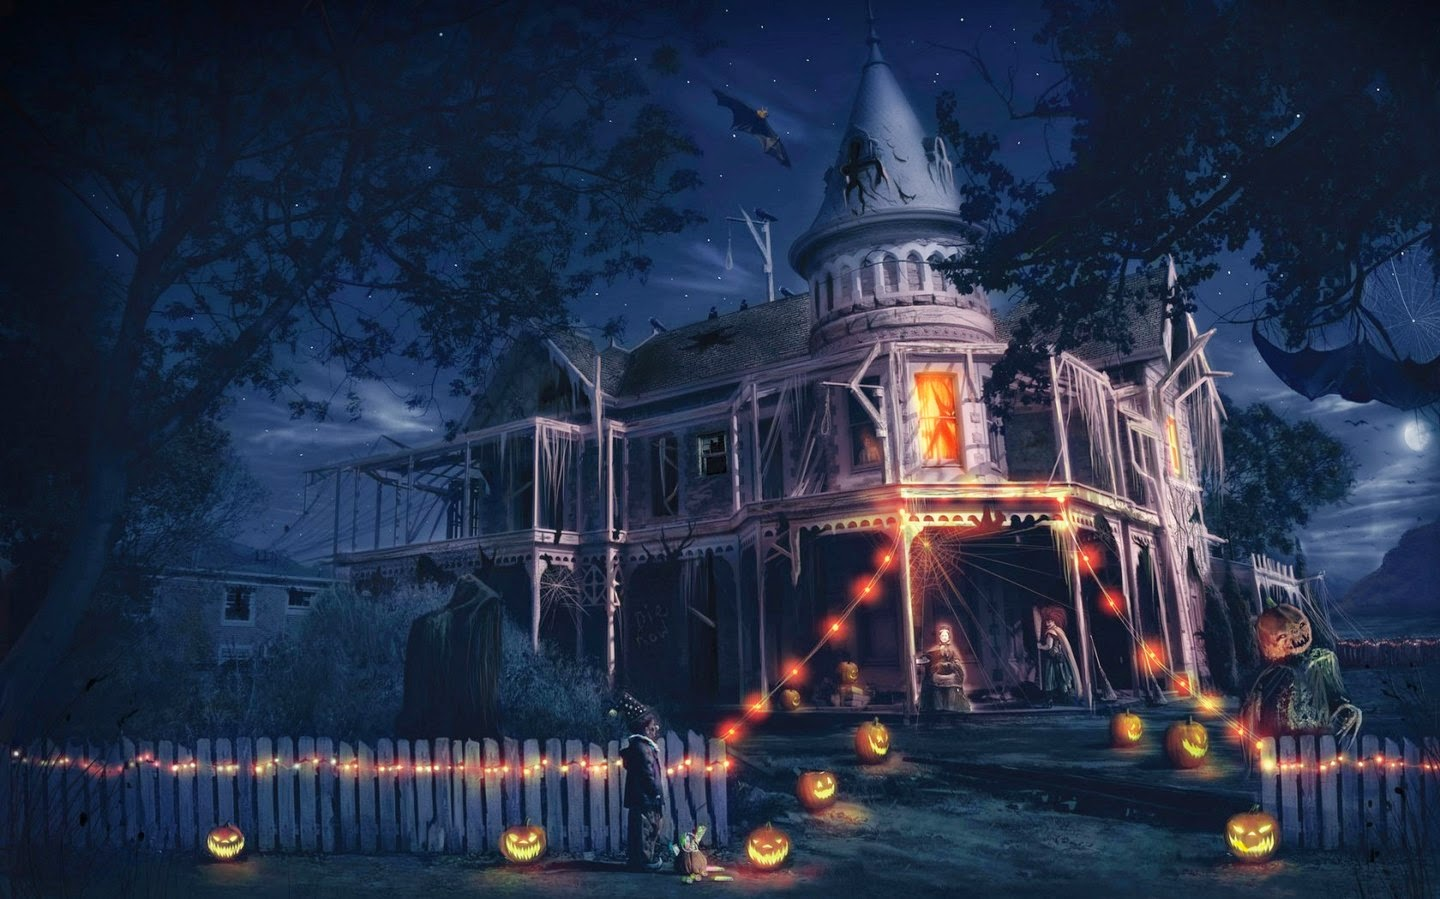 1440x899-halloween-home-ghost-decoration-with-pumpkin-glowing-image.jpg